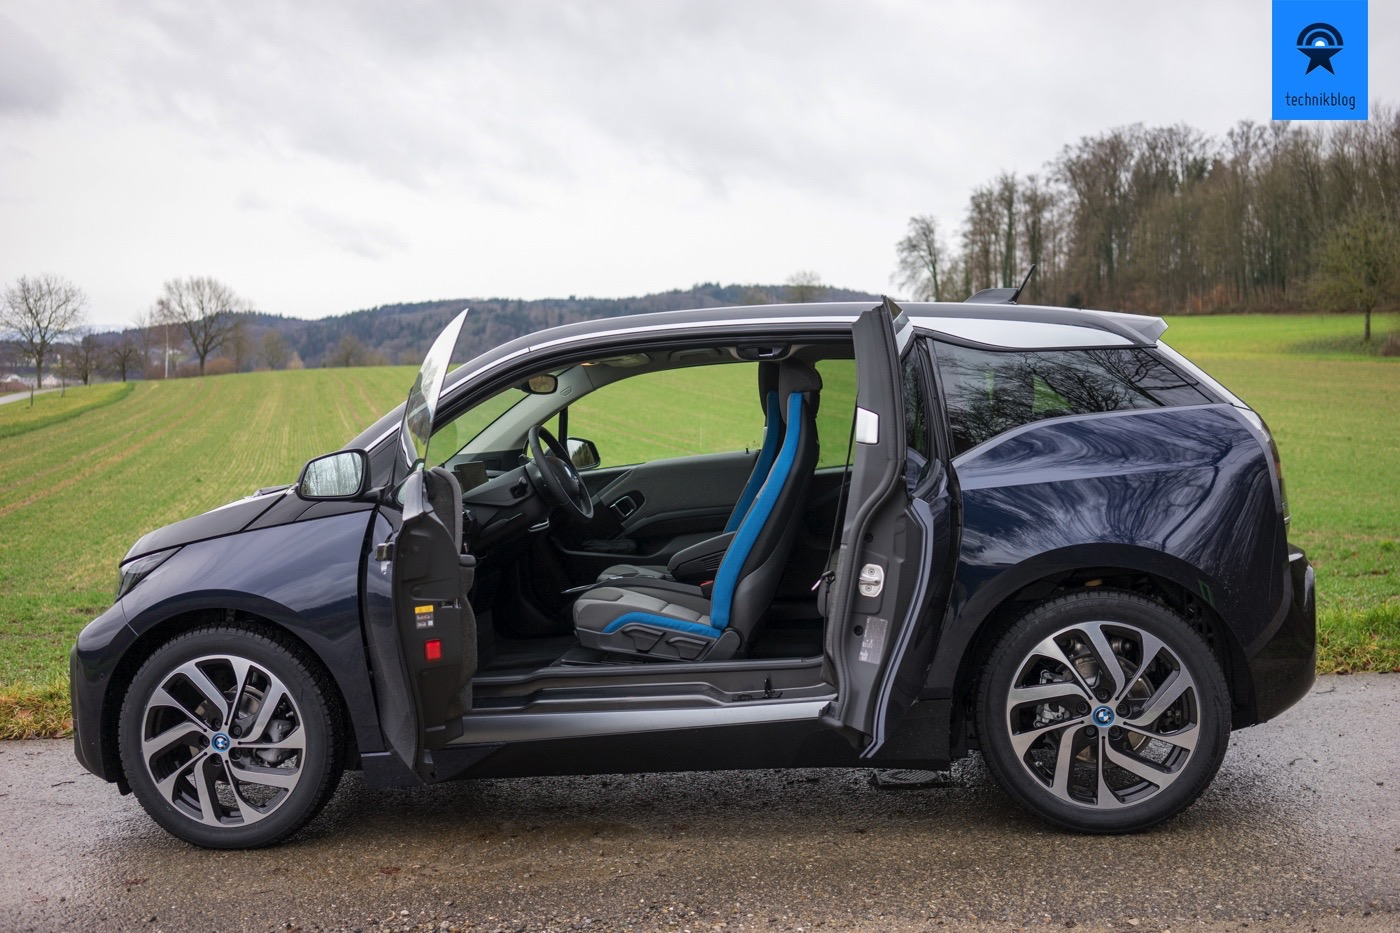 bmw i3 test kompakter elektroflitzer aus moderner nachhaltiger fertigung. Black Bedroom Furniture Sets. Home Design Ideas